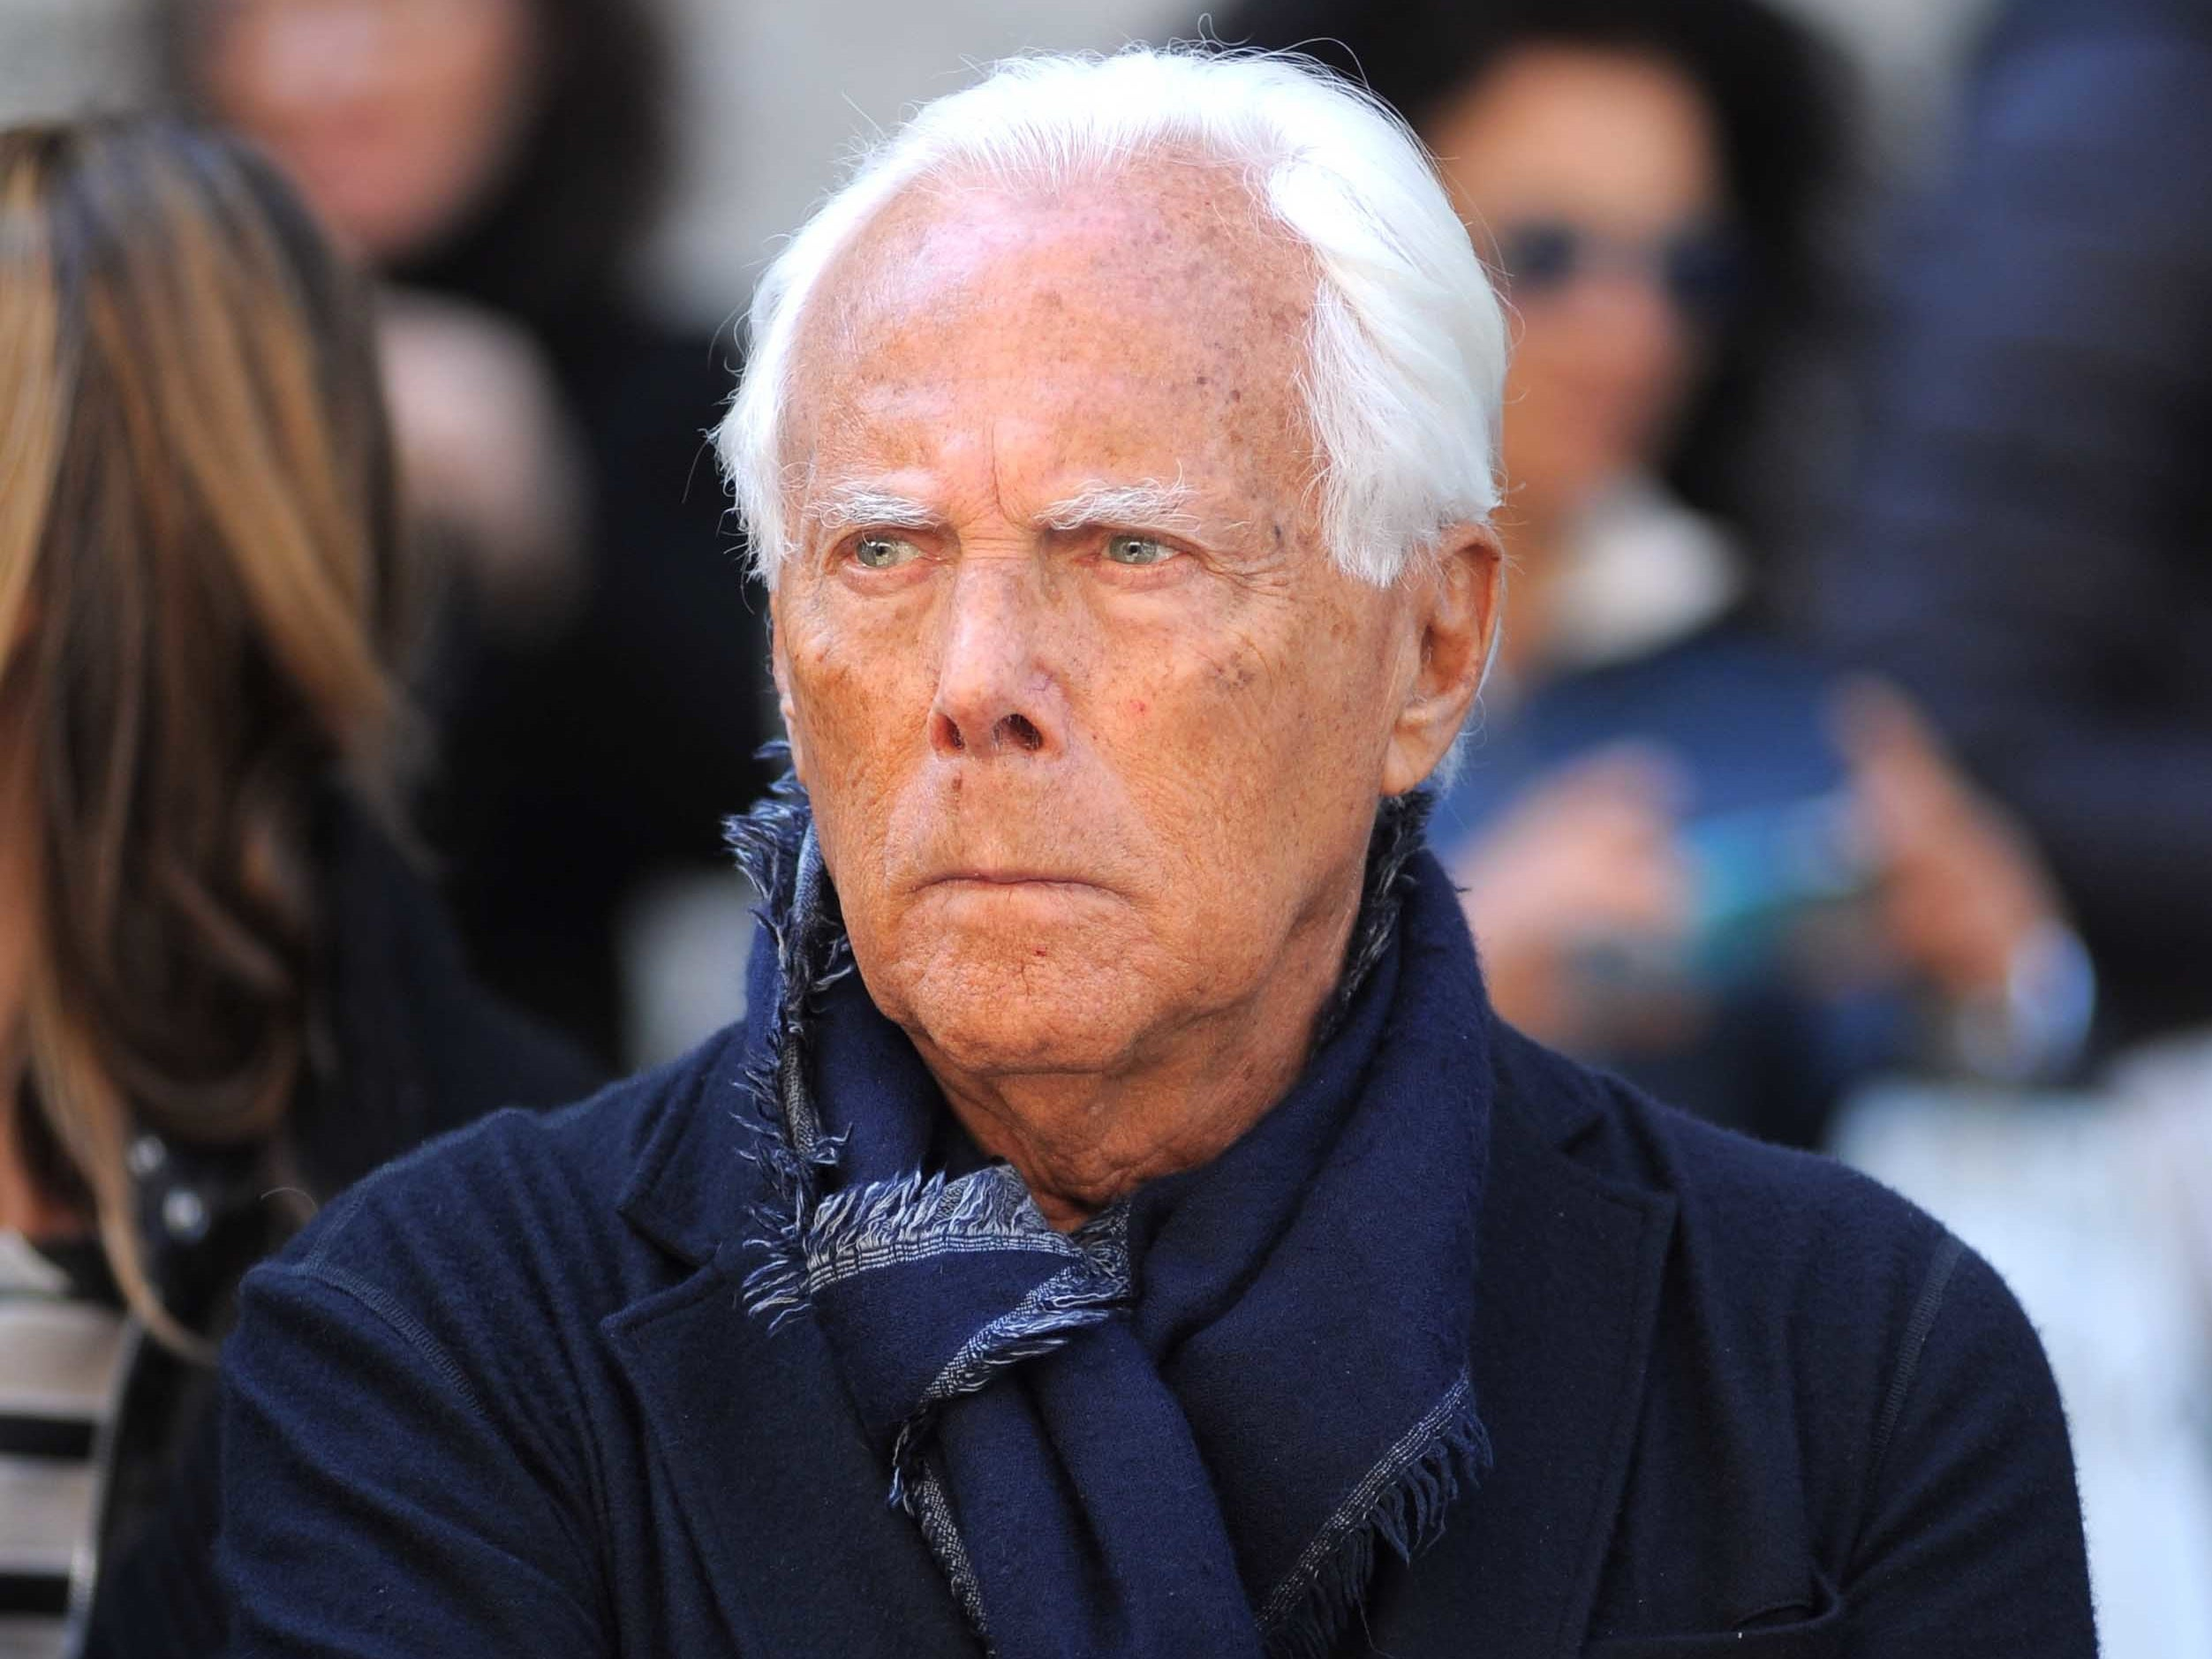 Giorgio Armani criticises the way some gay men dress ... Giorgio Armani